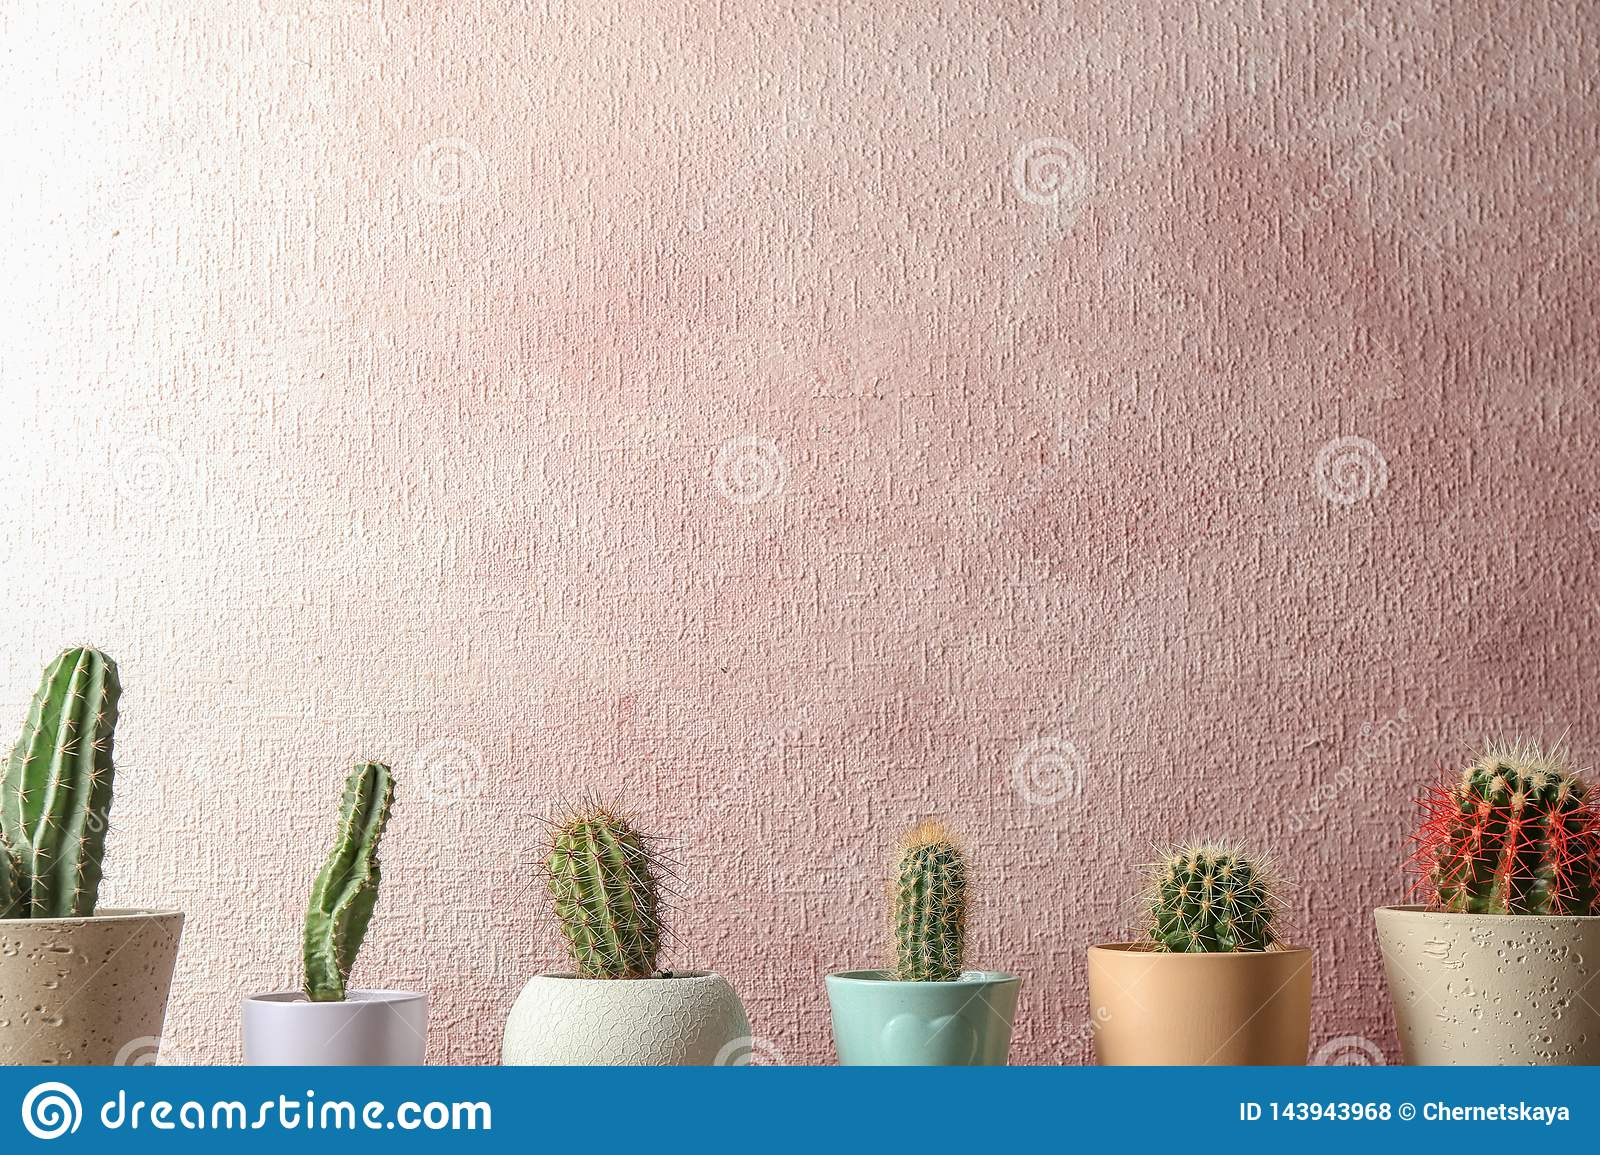 Different potted cacti near color wall. Interior decor